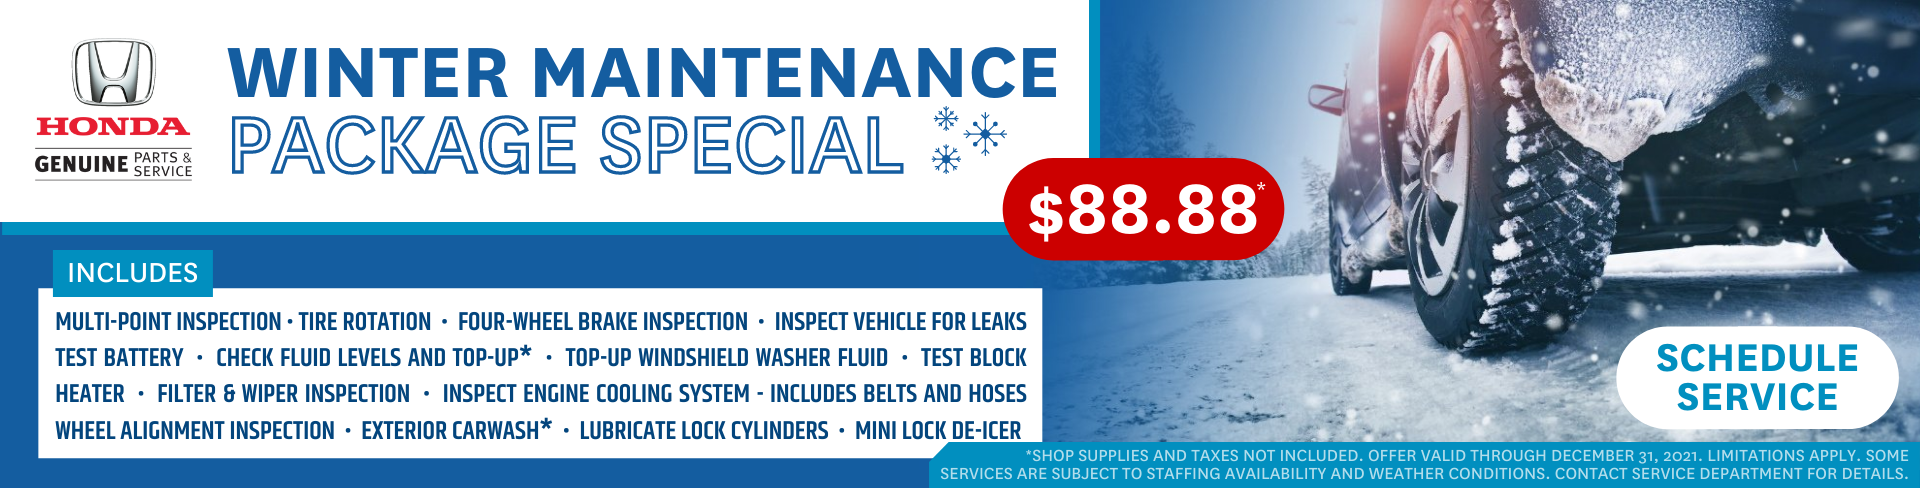 2021 Honda Winter Maintenance Special - $88.88 - Contact Service for Details